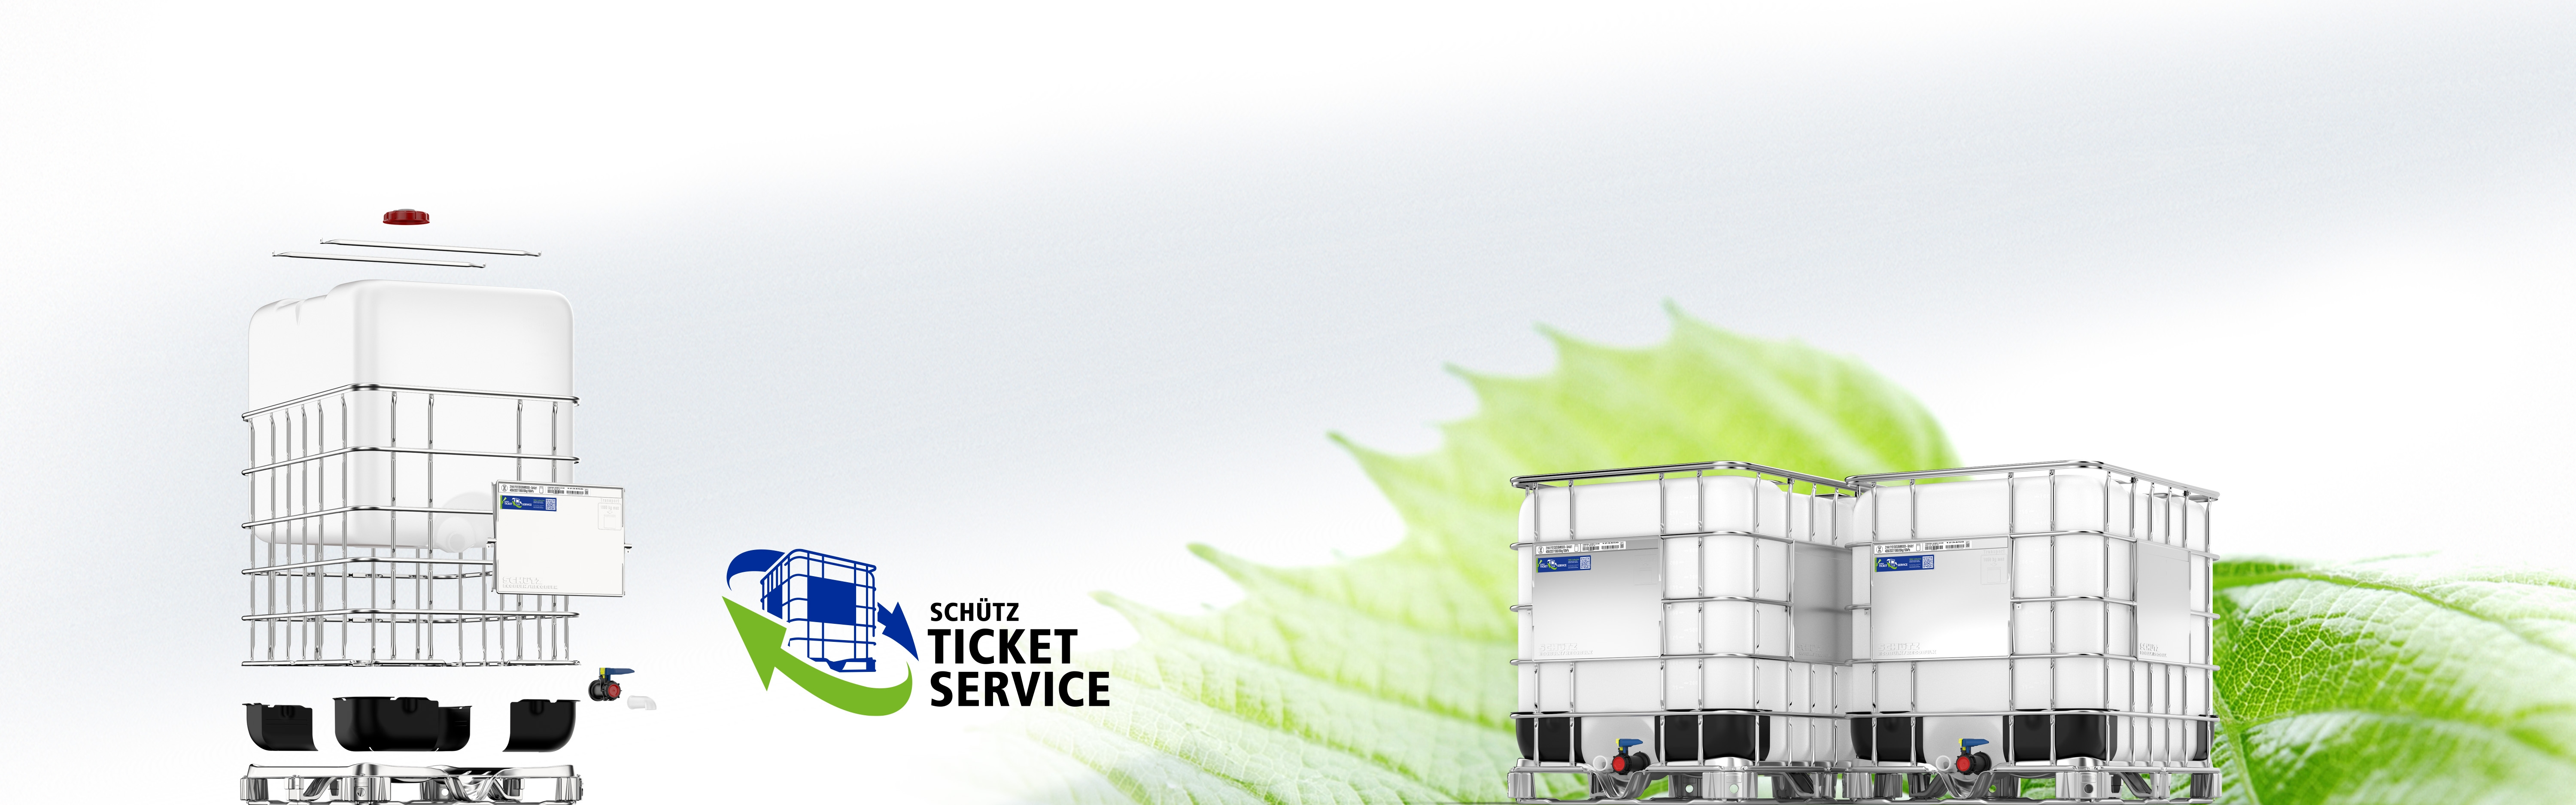 ibc_ticketservice_slider_rgb.jpg